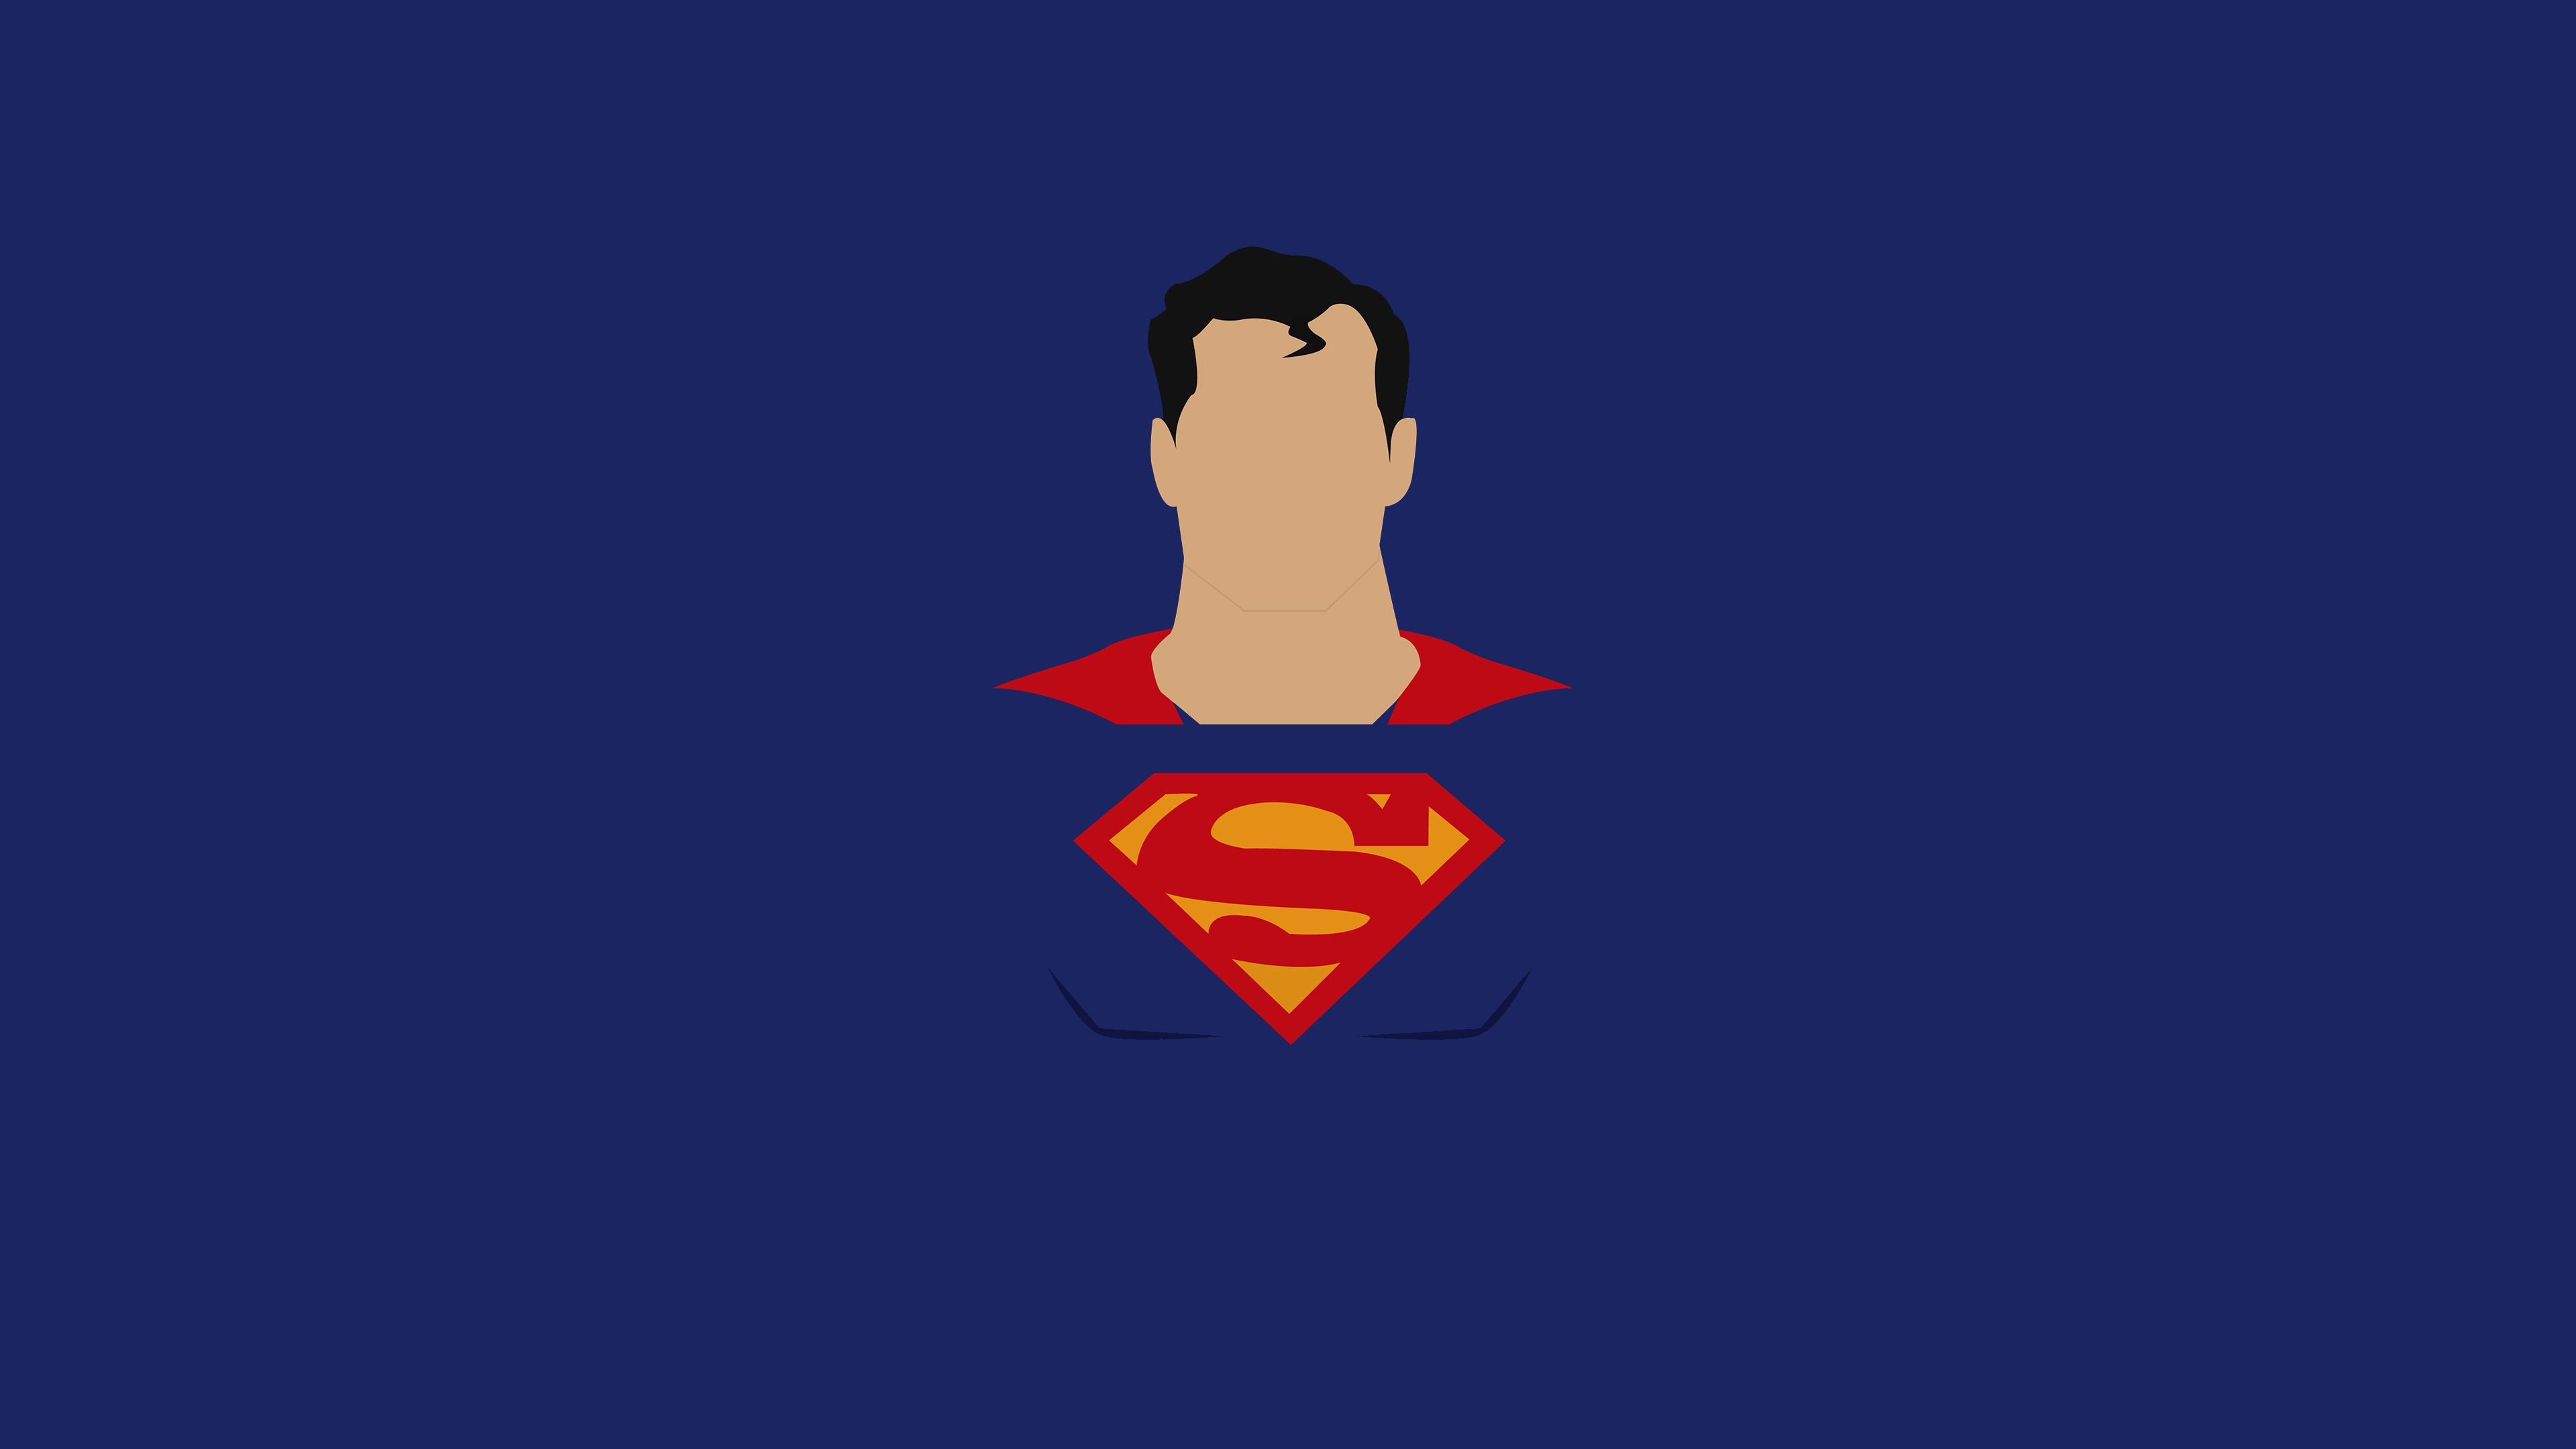 Superman Minimalism Art 4k Superman Wallpapers Superheroes Wallpapers Hd Wallpapers Digital Art Wallpapers Superman Wallpaper Superman Artwork Art Wallpaper